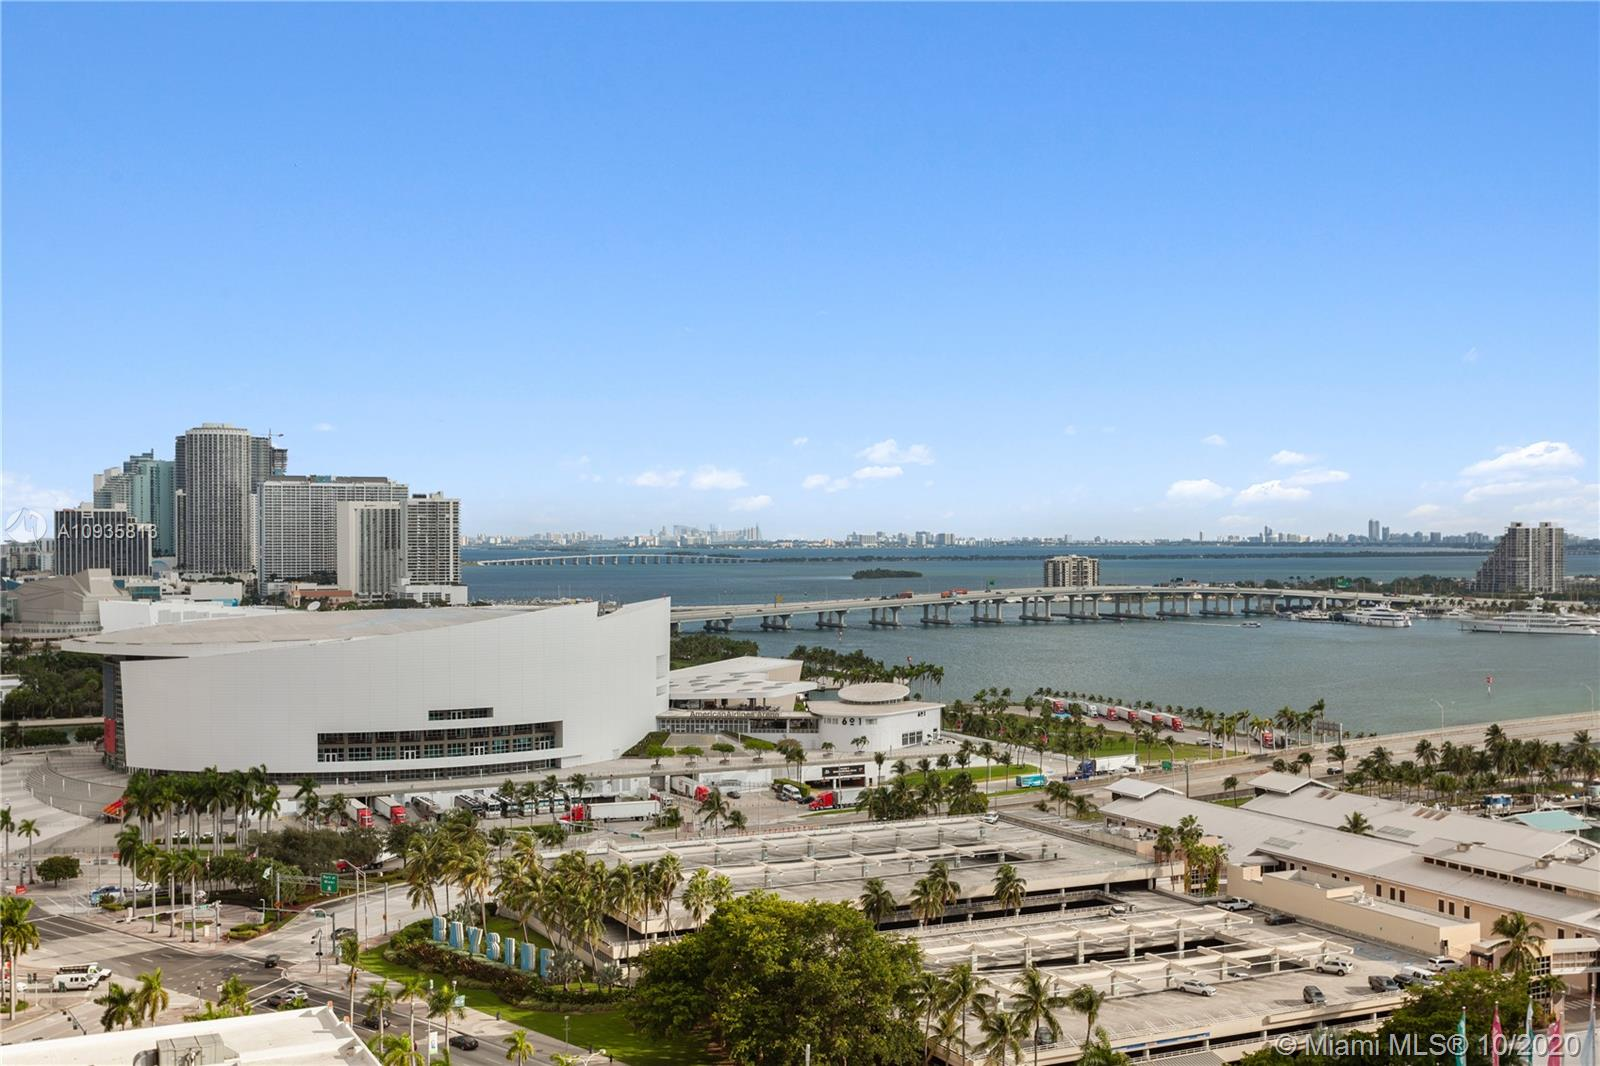 South East corner unit facing Biscayne Bay. Bright and great open floor plan with room for formal dining. 2 bedrooms and 2 full bathrooms. 1 Parking space. Building offers resort style amenities with fitness center, spa, office room, and much more. Unit is tenant occupied till Feb 2021 for $2,000 per month. Buy with as little as 3% down! Showings with pre-approval only and serious buyers. Thanks.